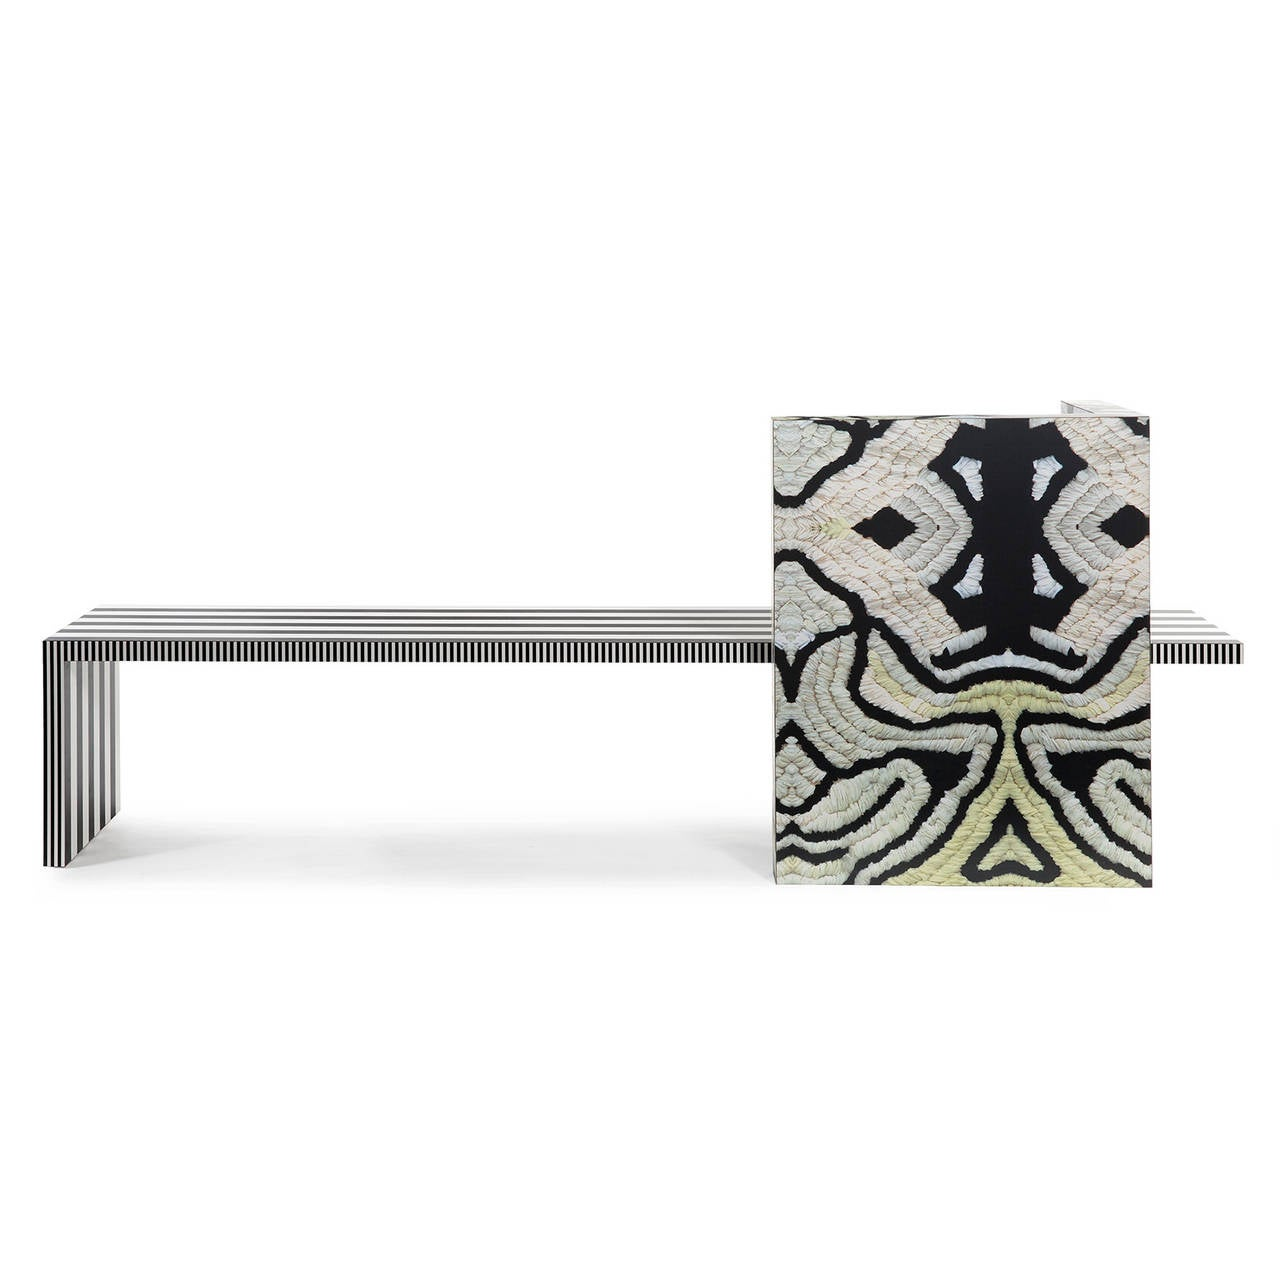 Laminate Memphis Inspired Bench Neo Laminati Collection For Sale